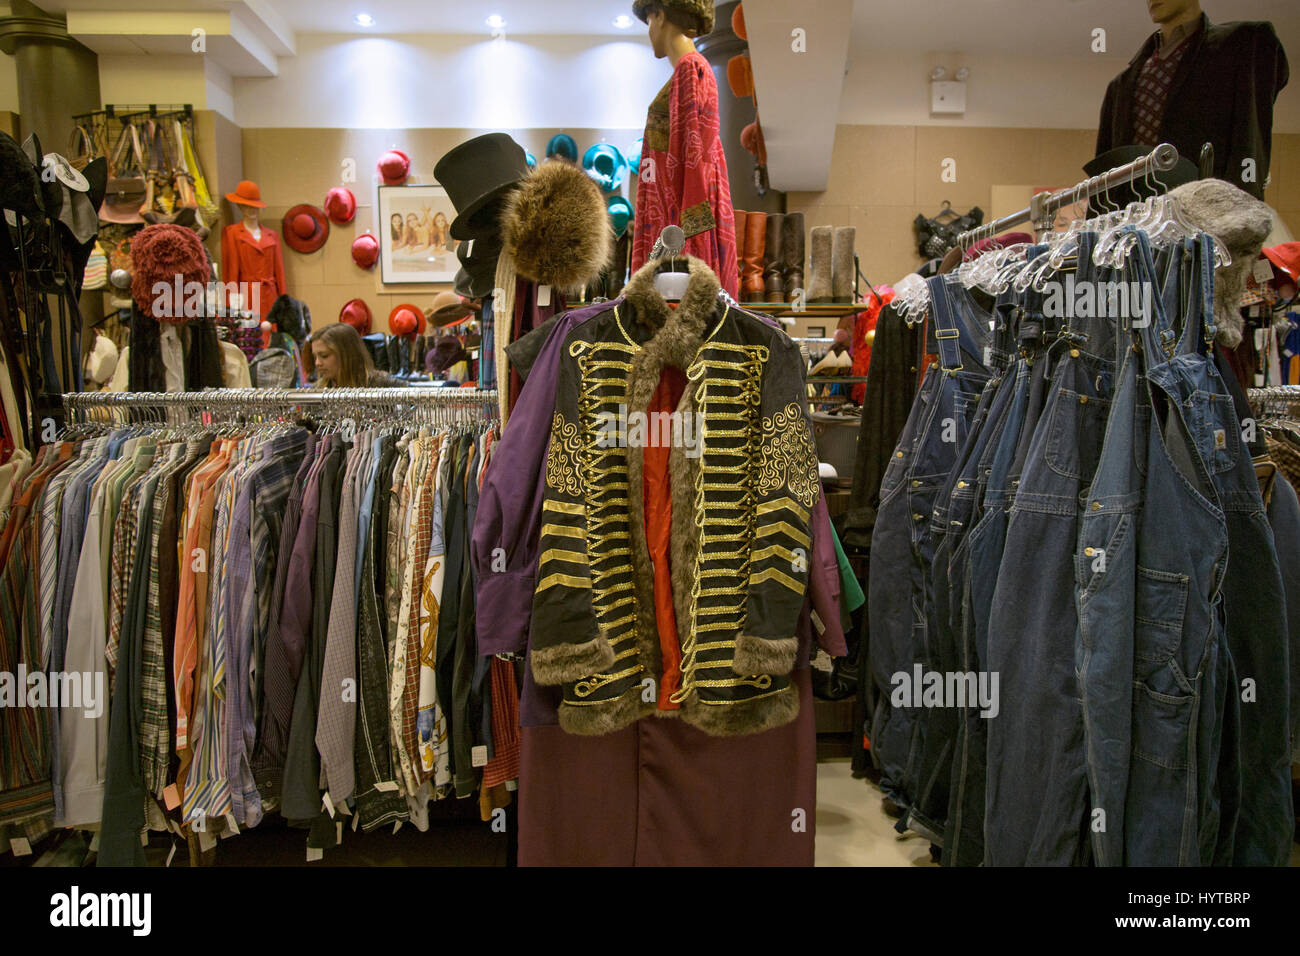 Reminiscence vintage clothing and knickknack store on Fifth Avenue in Greenwich Village, New York City Stock Photo